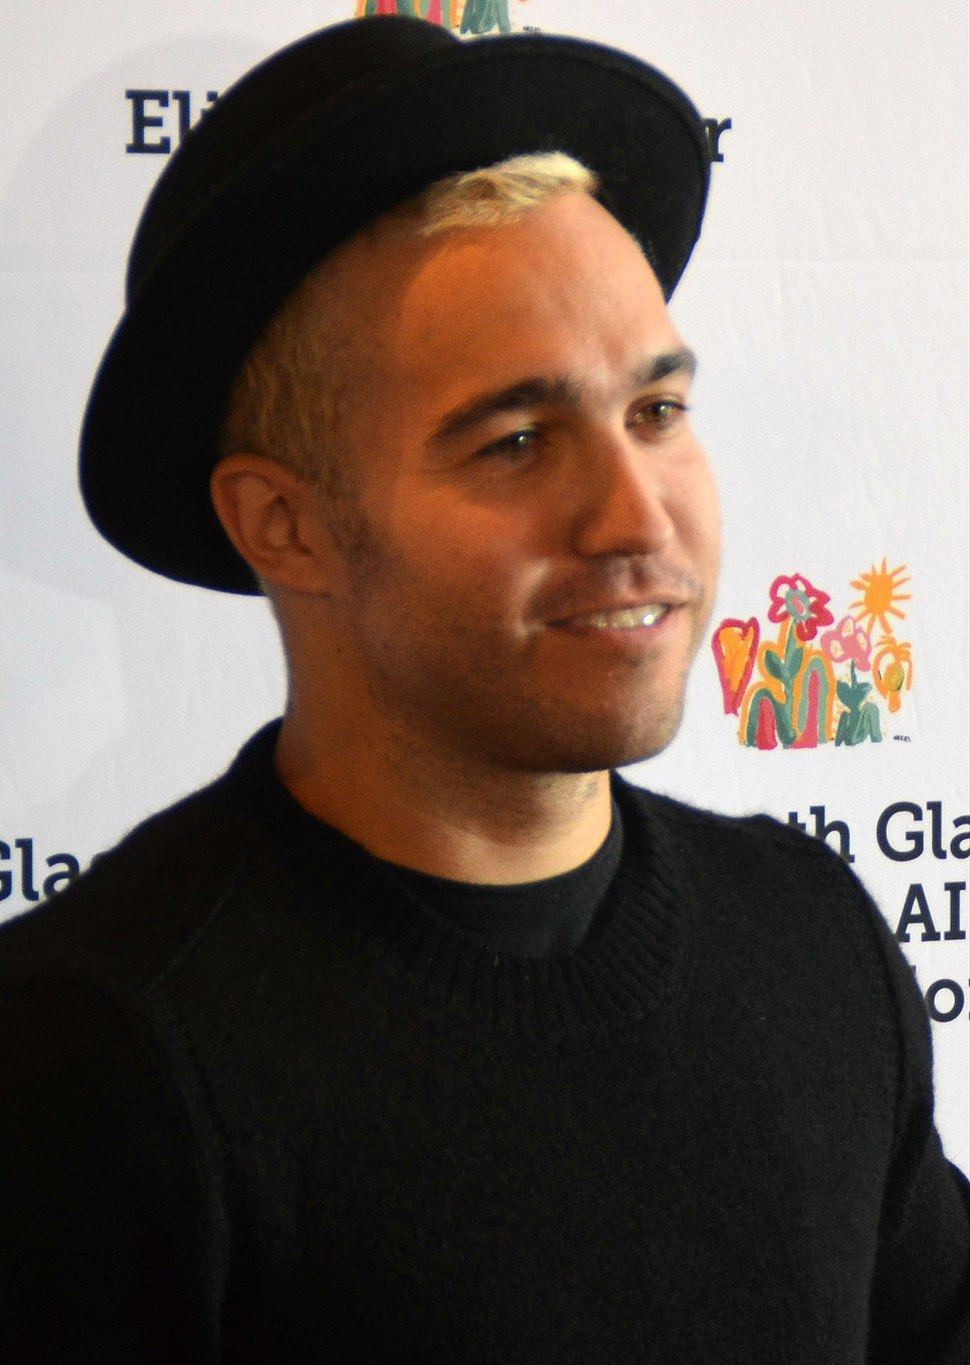 Pete Wentz Oct 2014 (cropped)